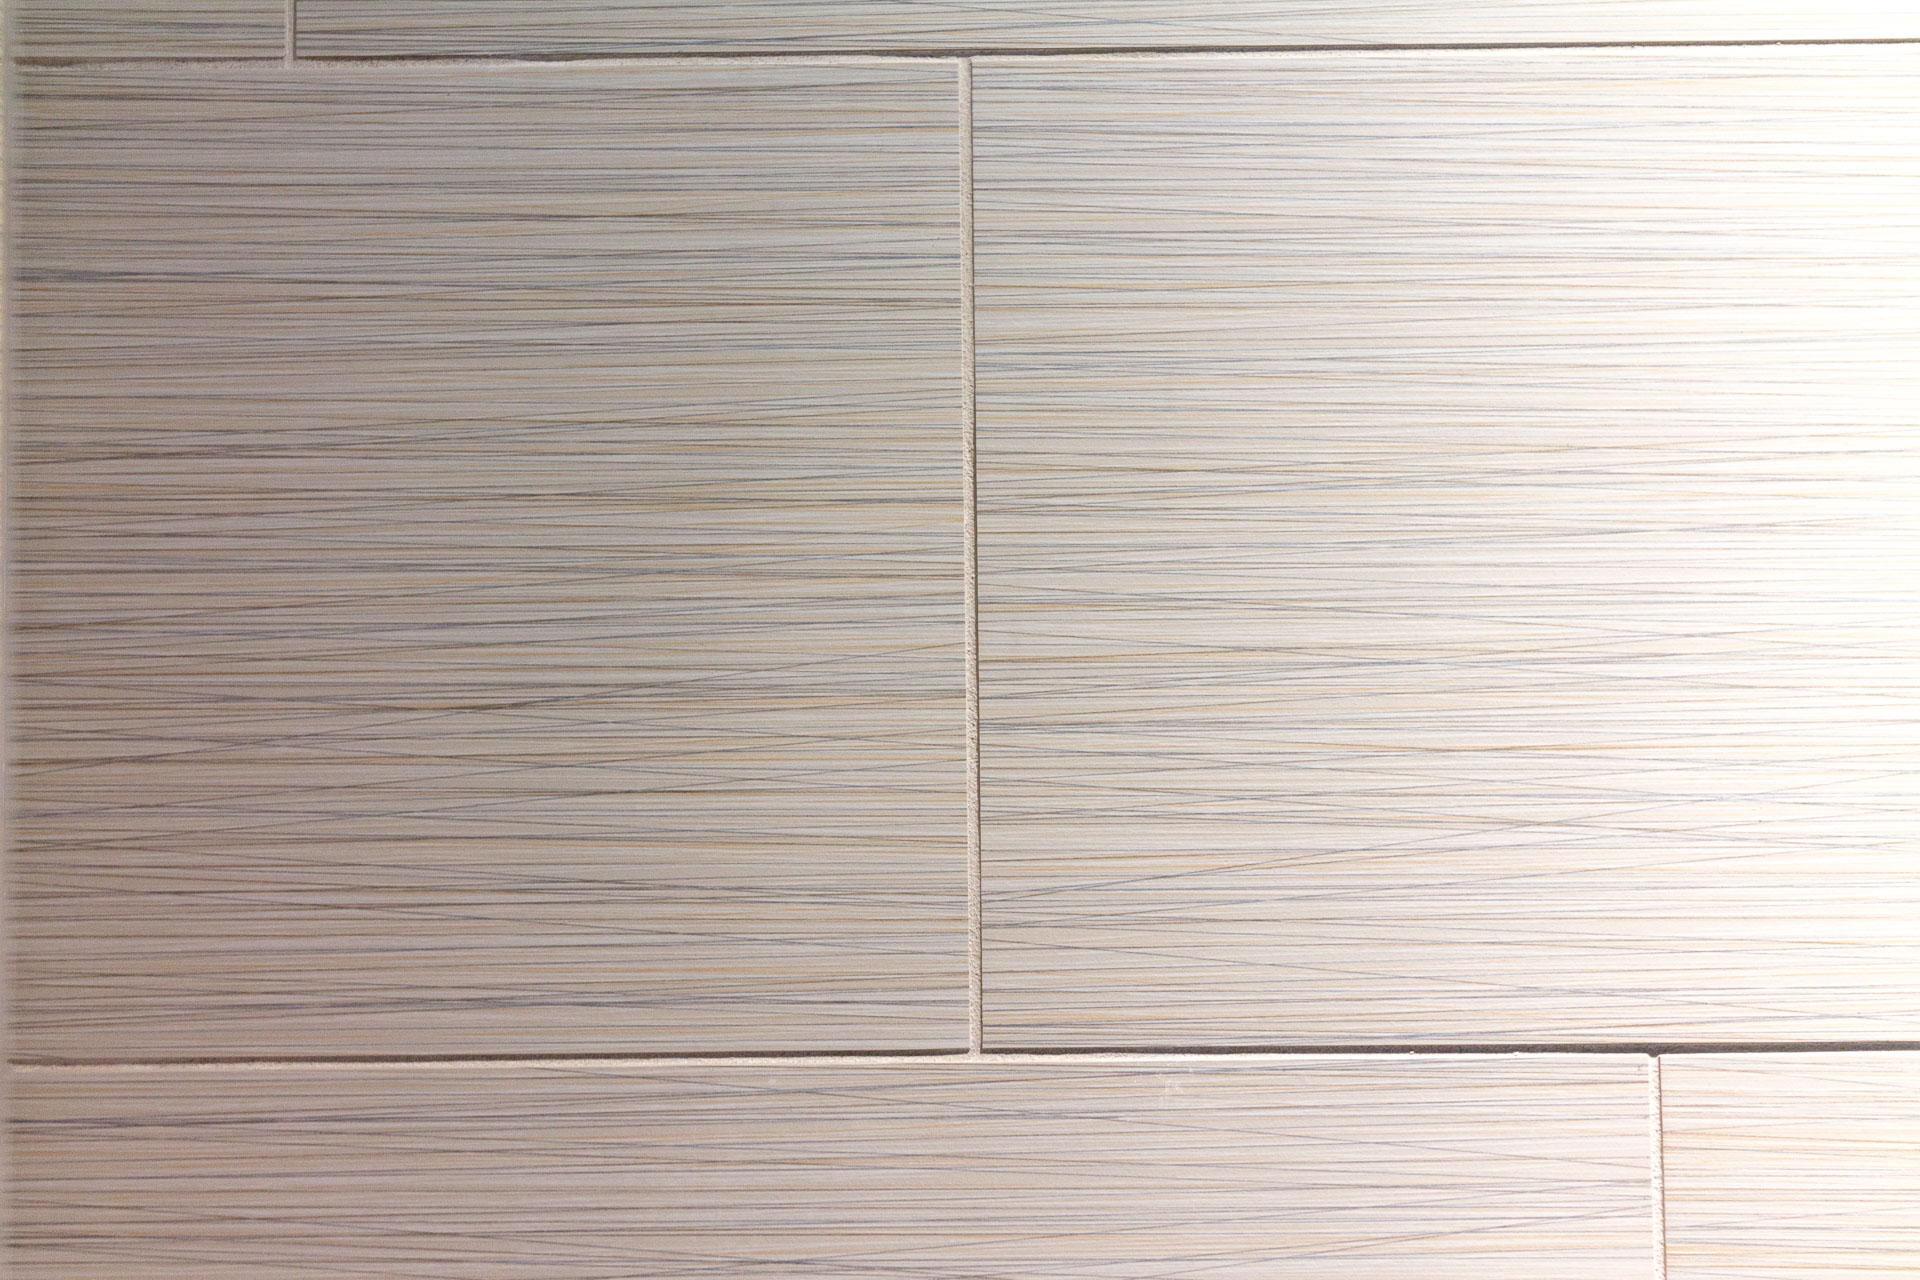 Shower Wall tile is Pioggia Tile, 12x24, Ivory, installed at a 1/3 offset